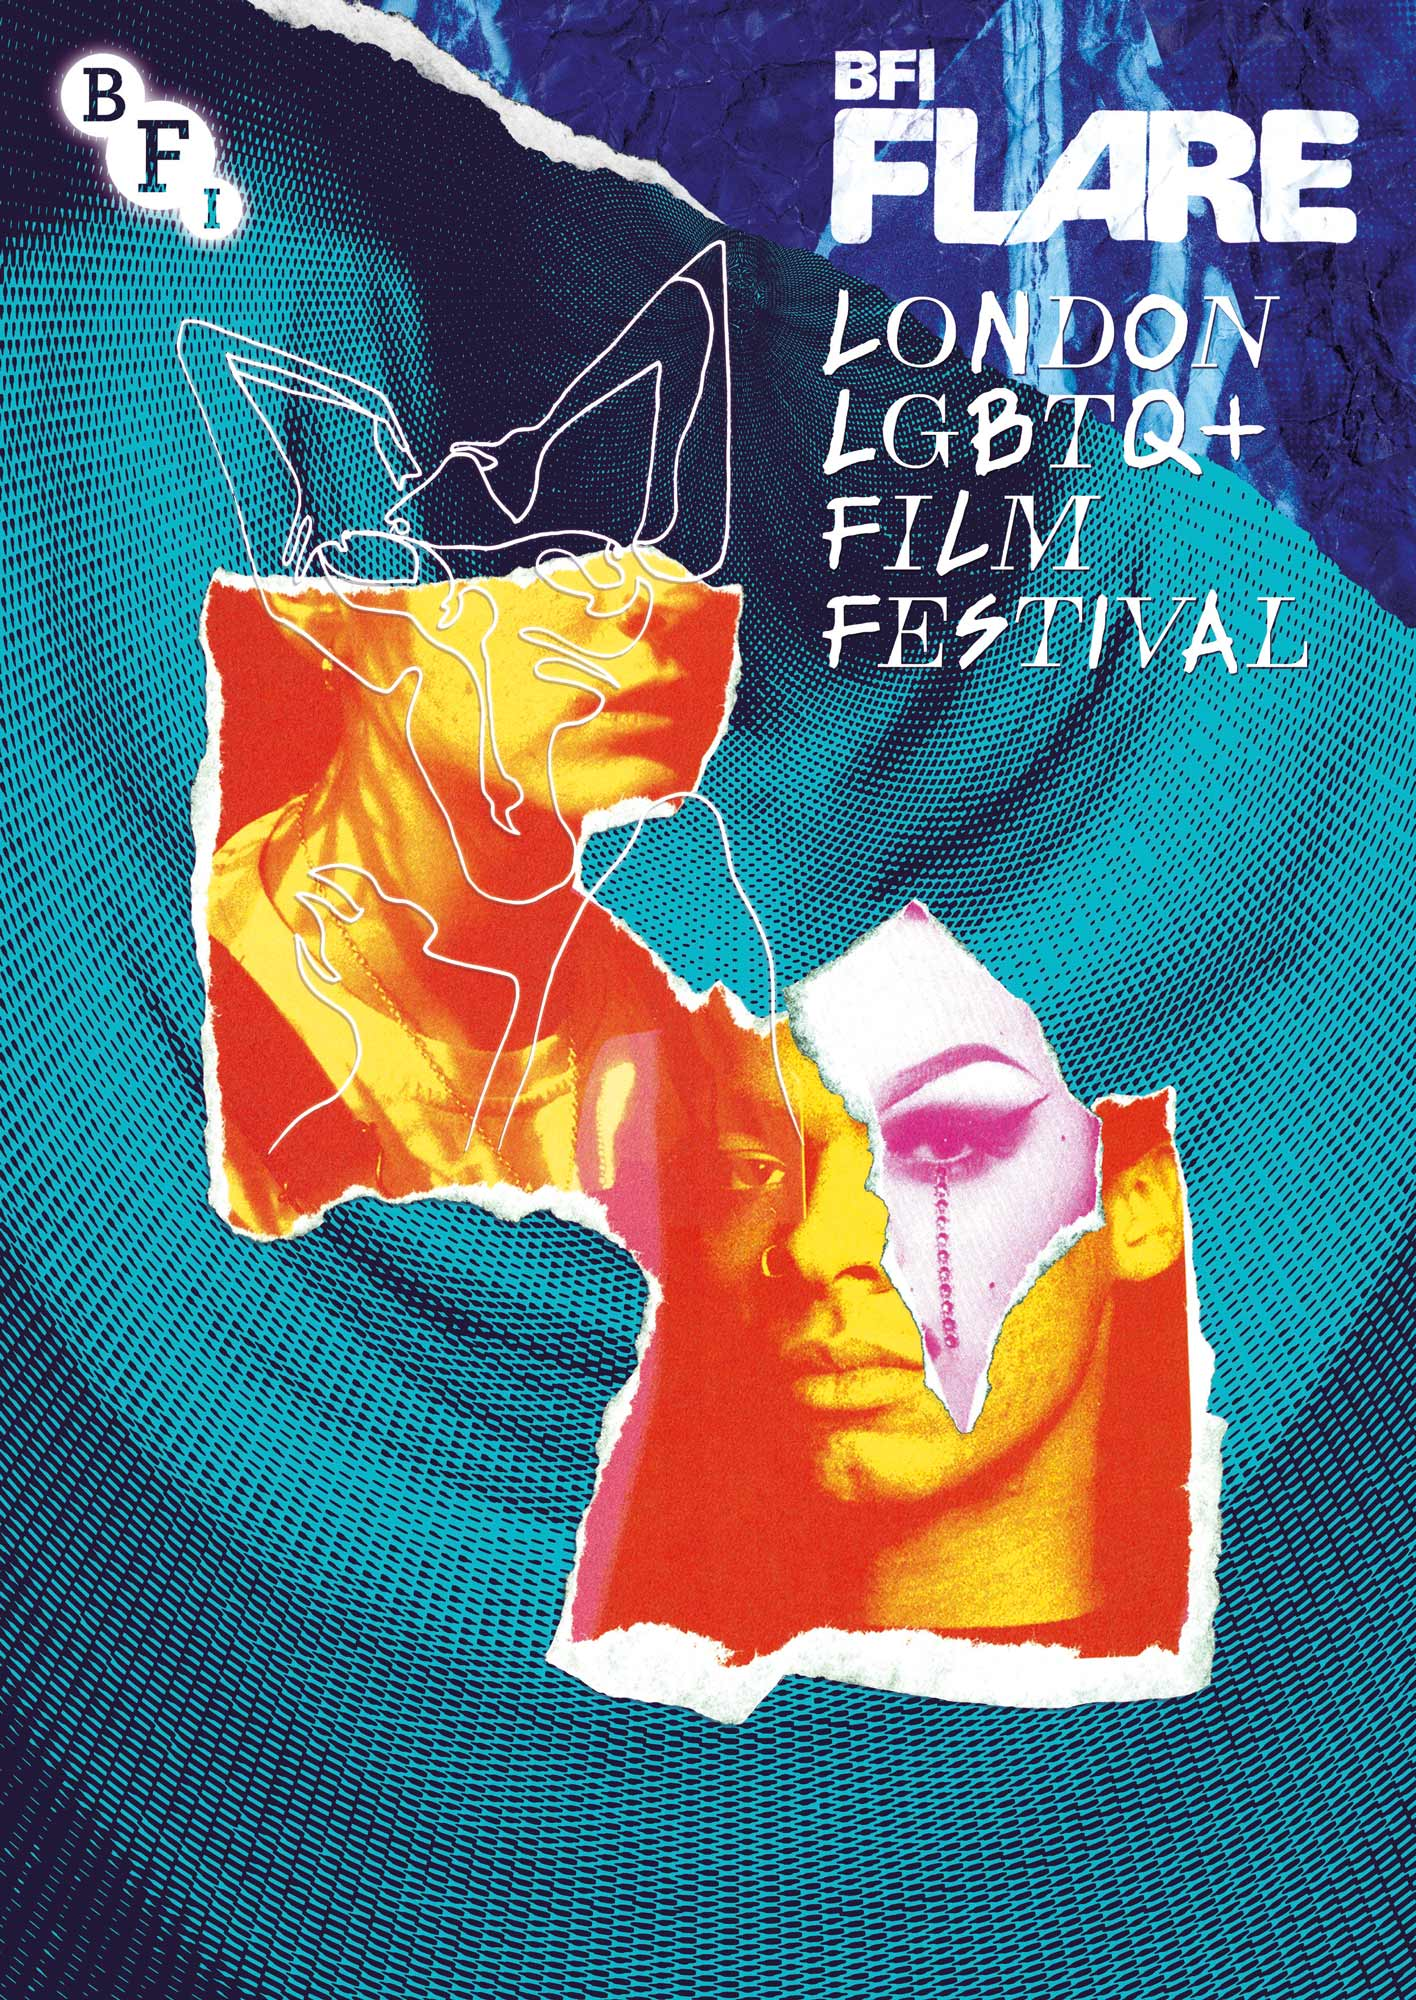 A Preview of the 2018 BFI Flare London LGBTQ+ Film Festival